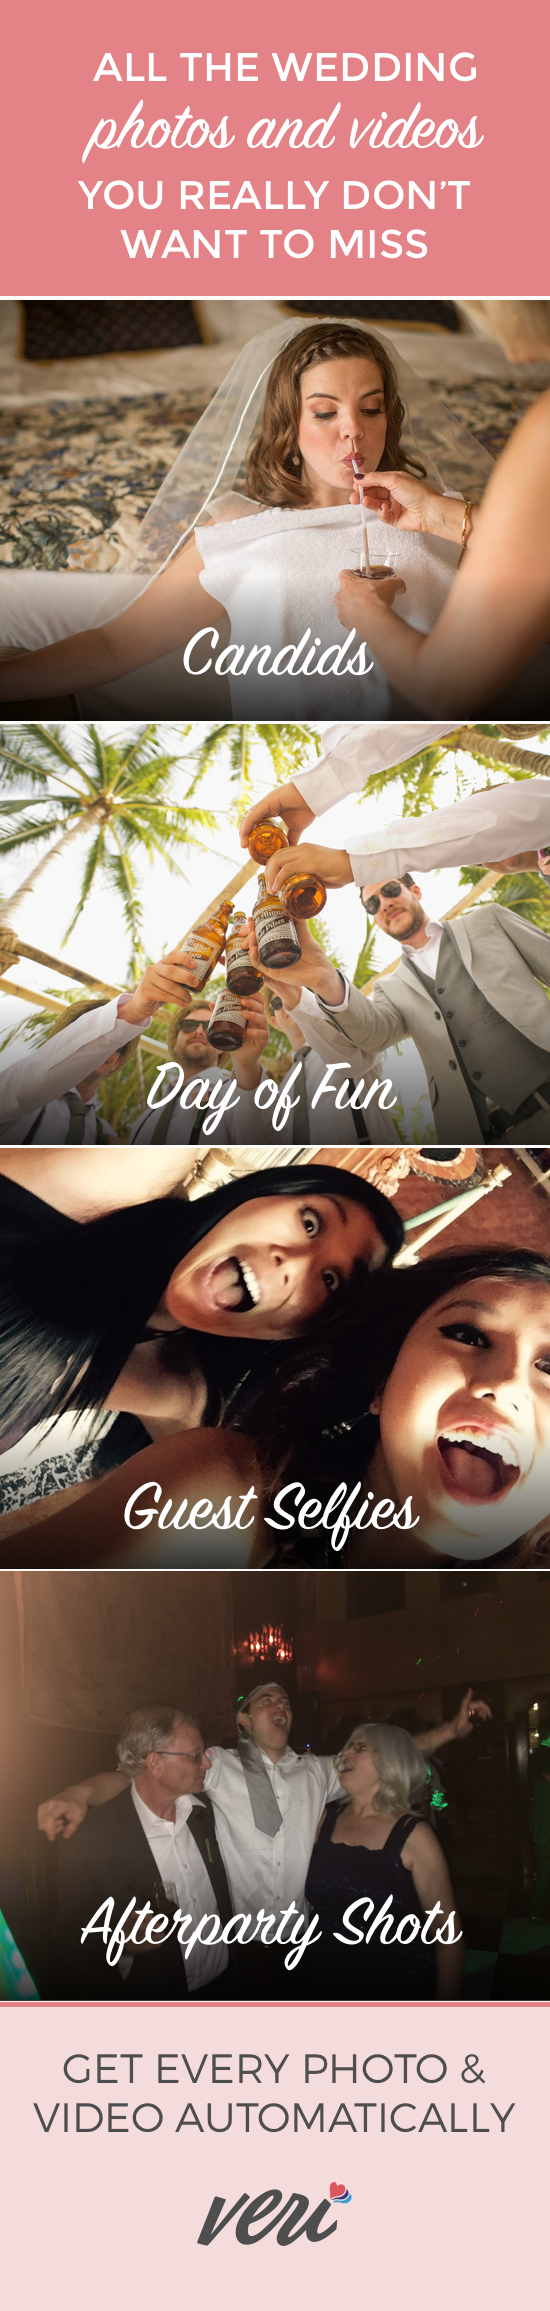 Guests use their normal phone cameras to snap photos and